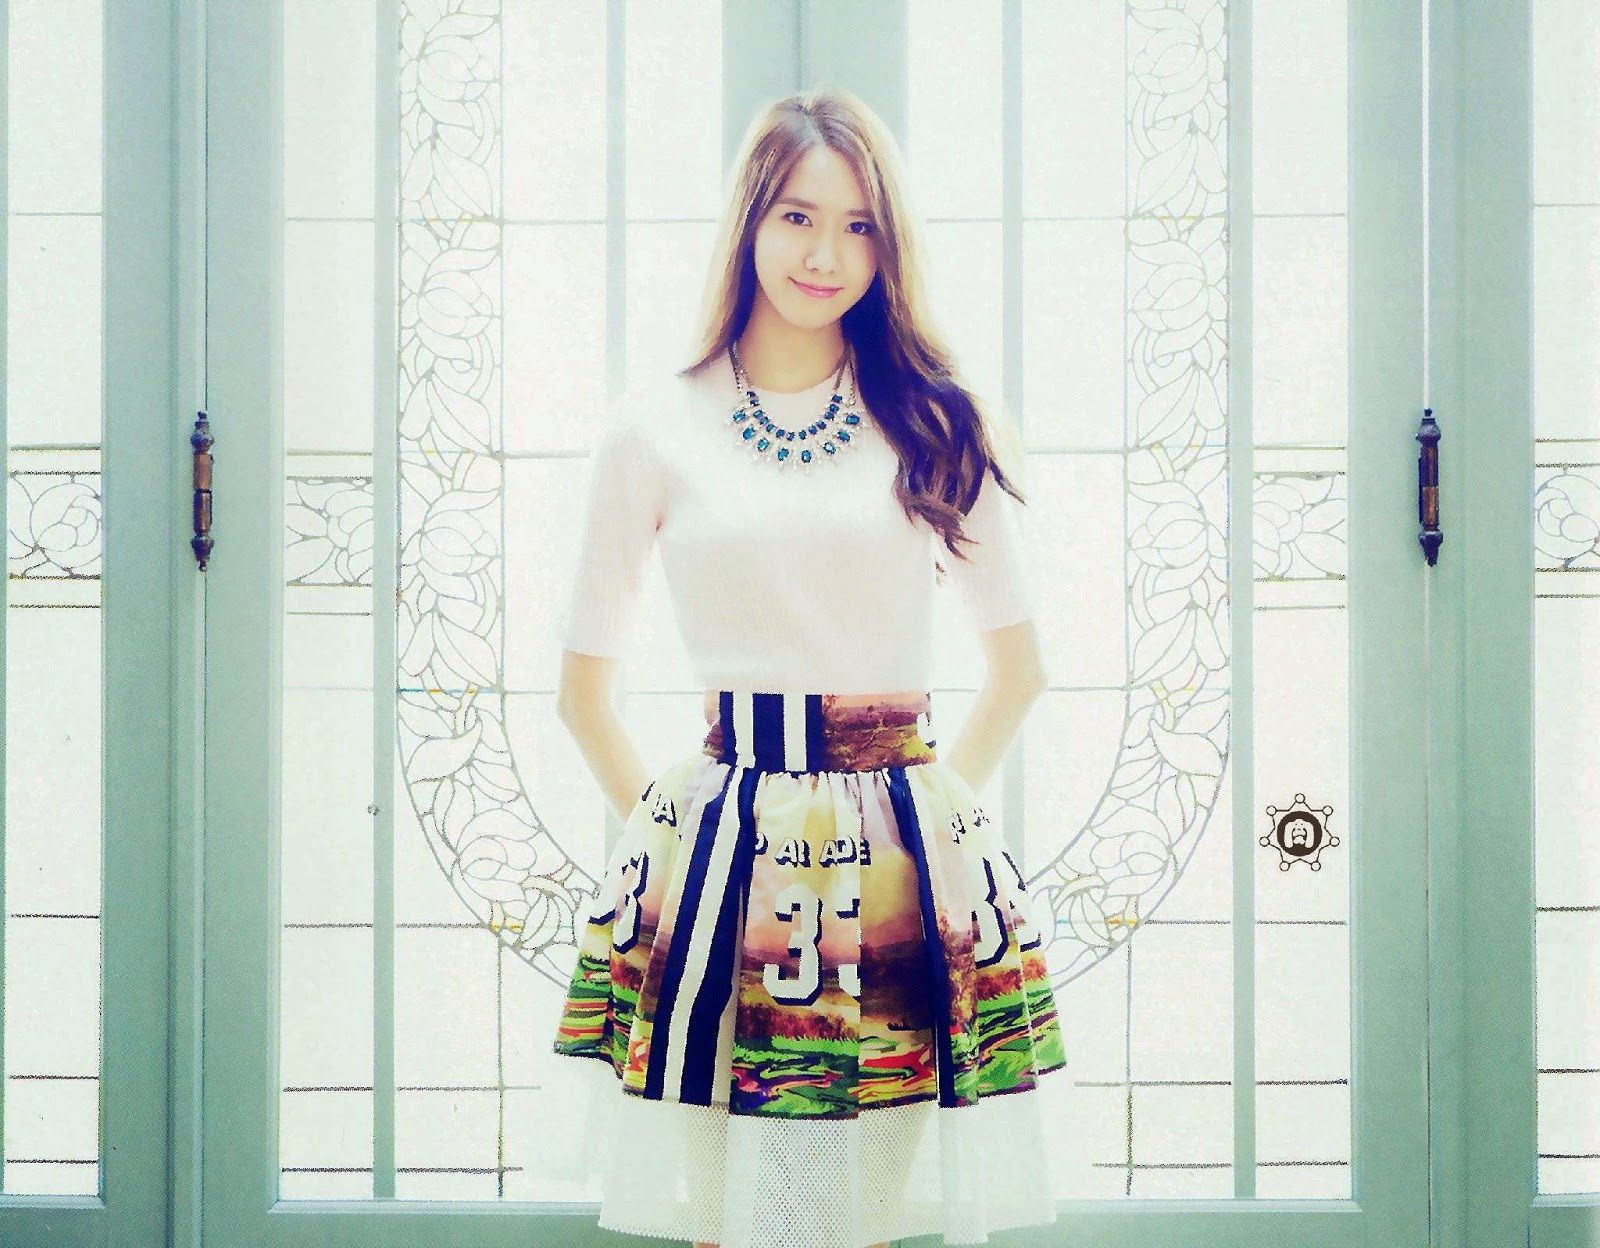 SNSD YoonA (윤아; ユナ) Girls Generation The Best Scan Photos 5